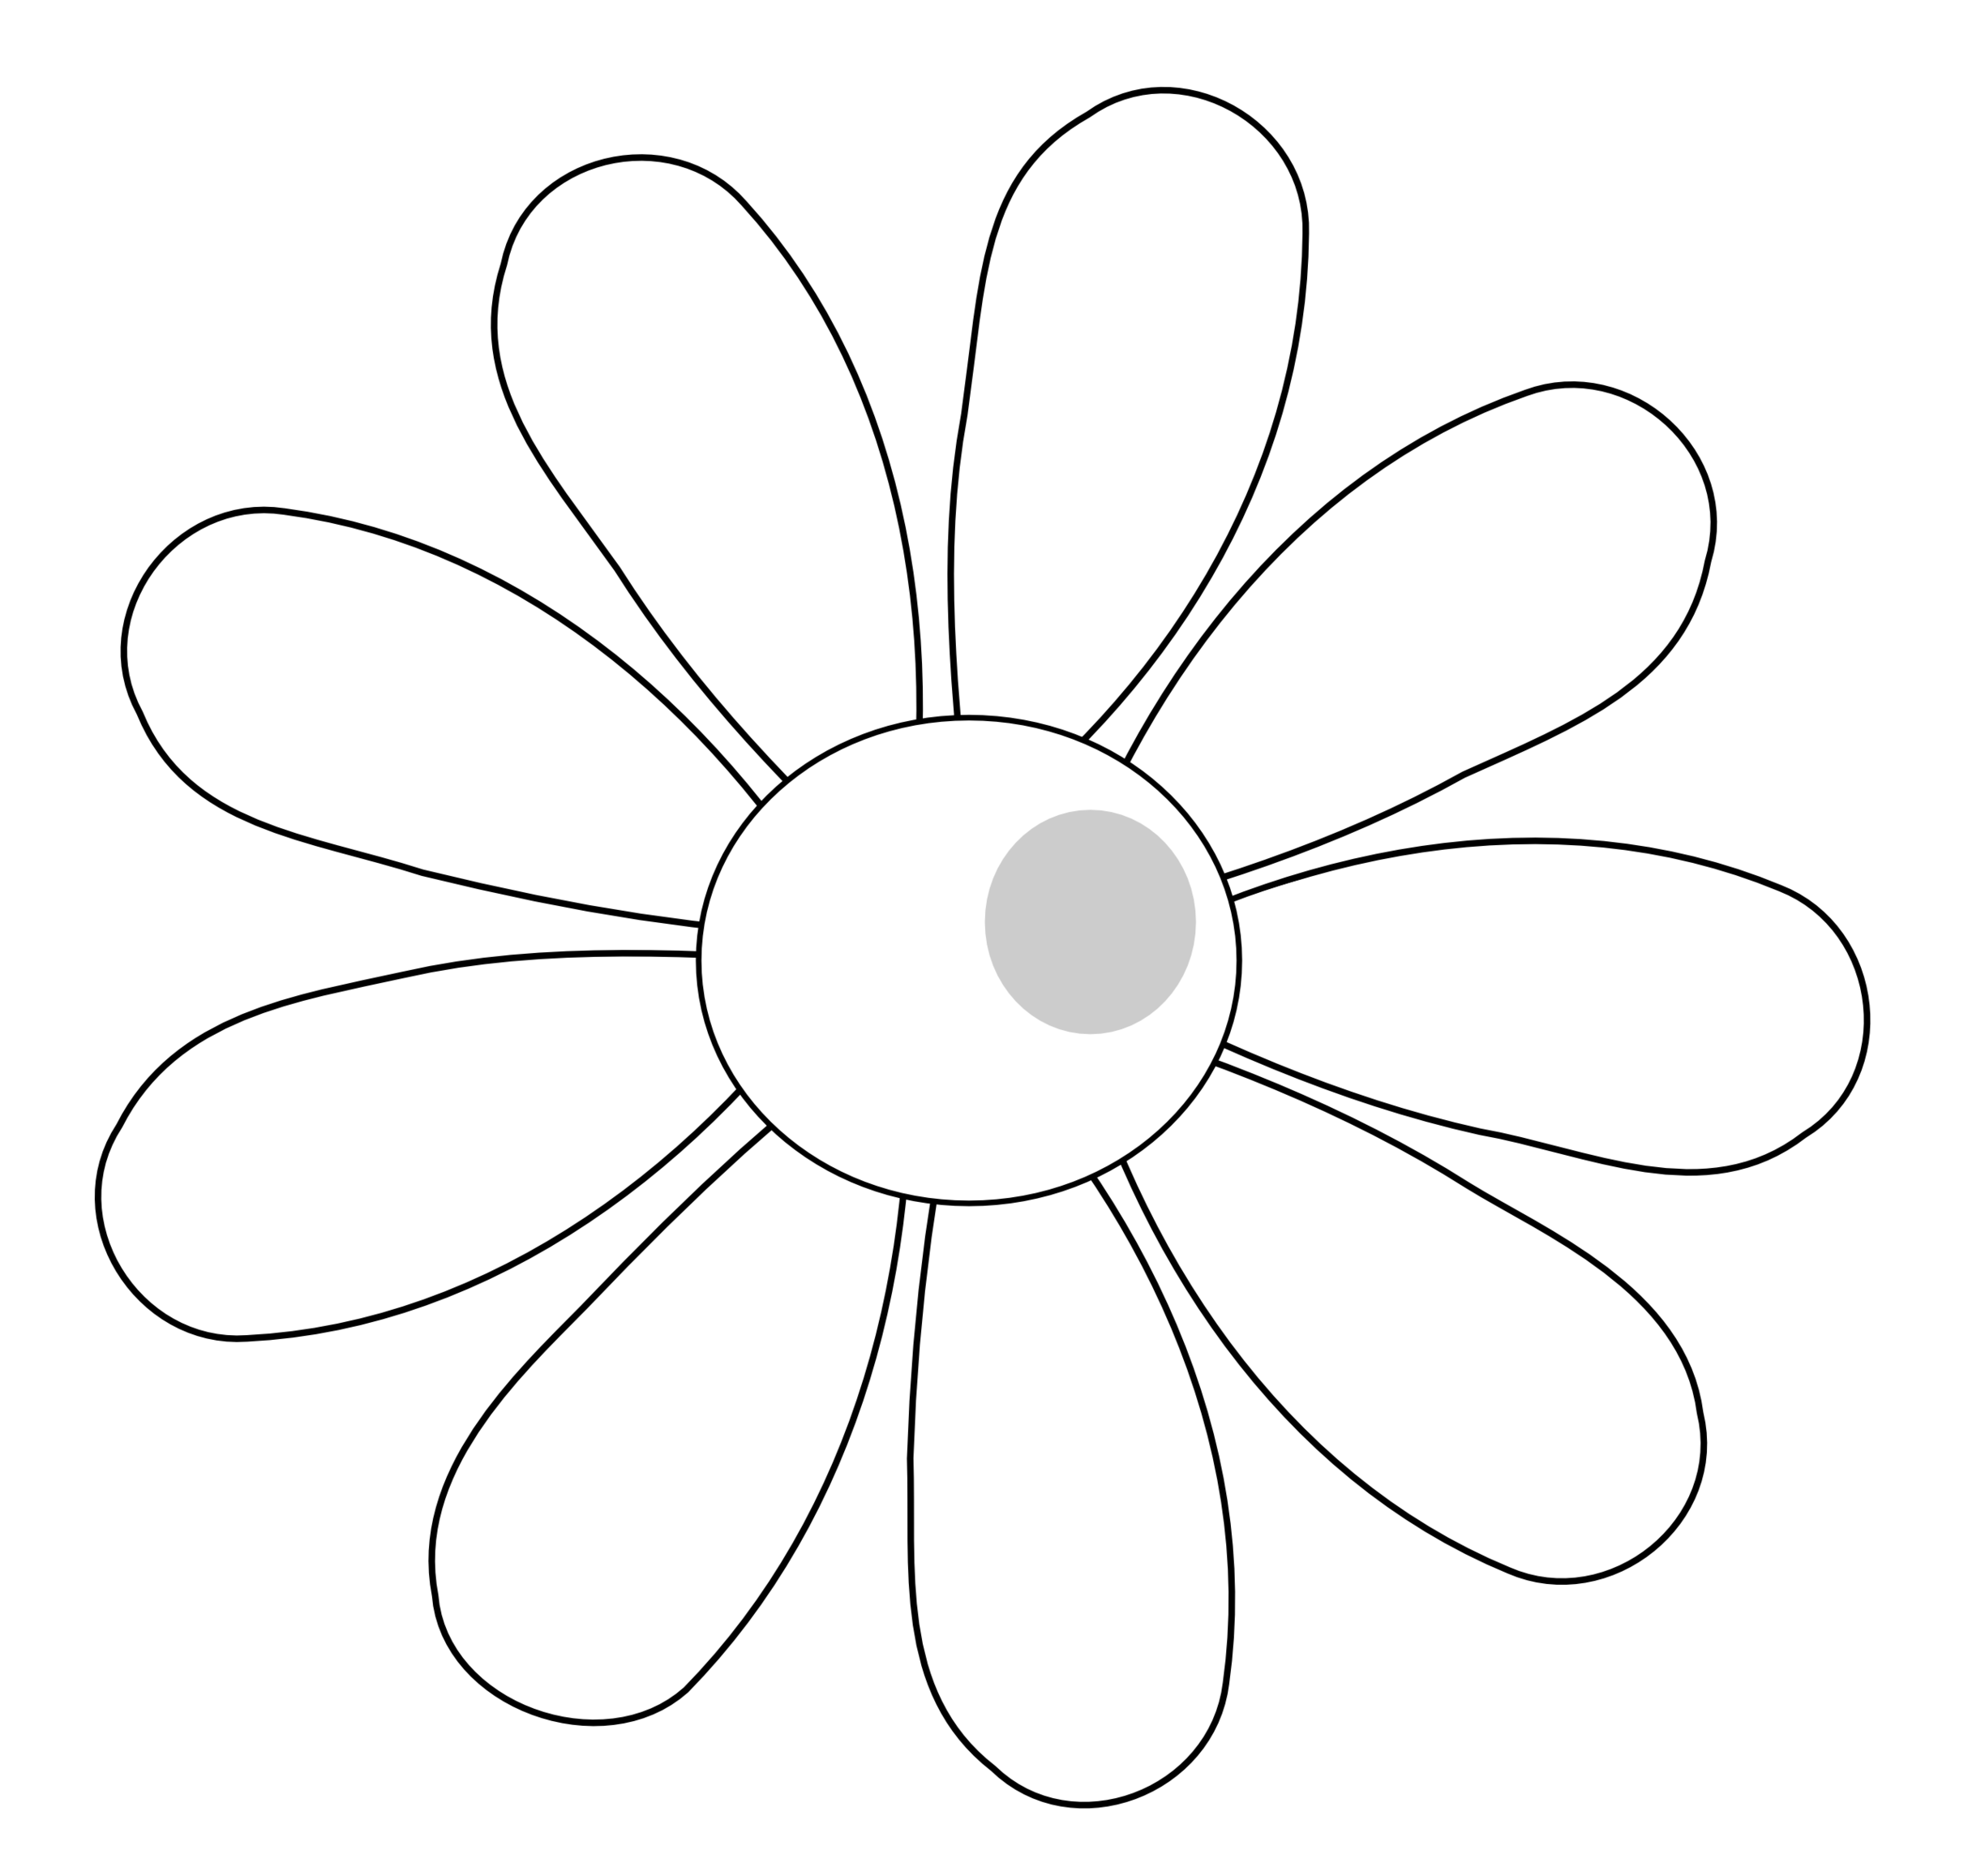 Simple black and white flower clipart clipart free stock Flower Outline Clip Art Daisies – Clipart Free Download clipart free stock